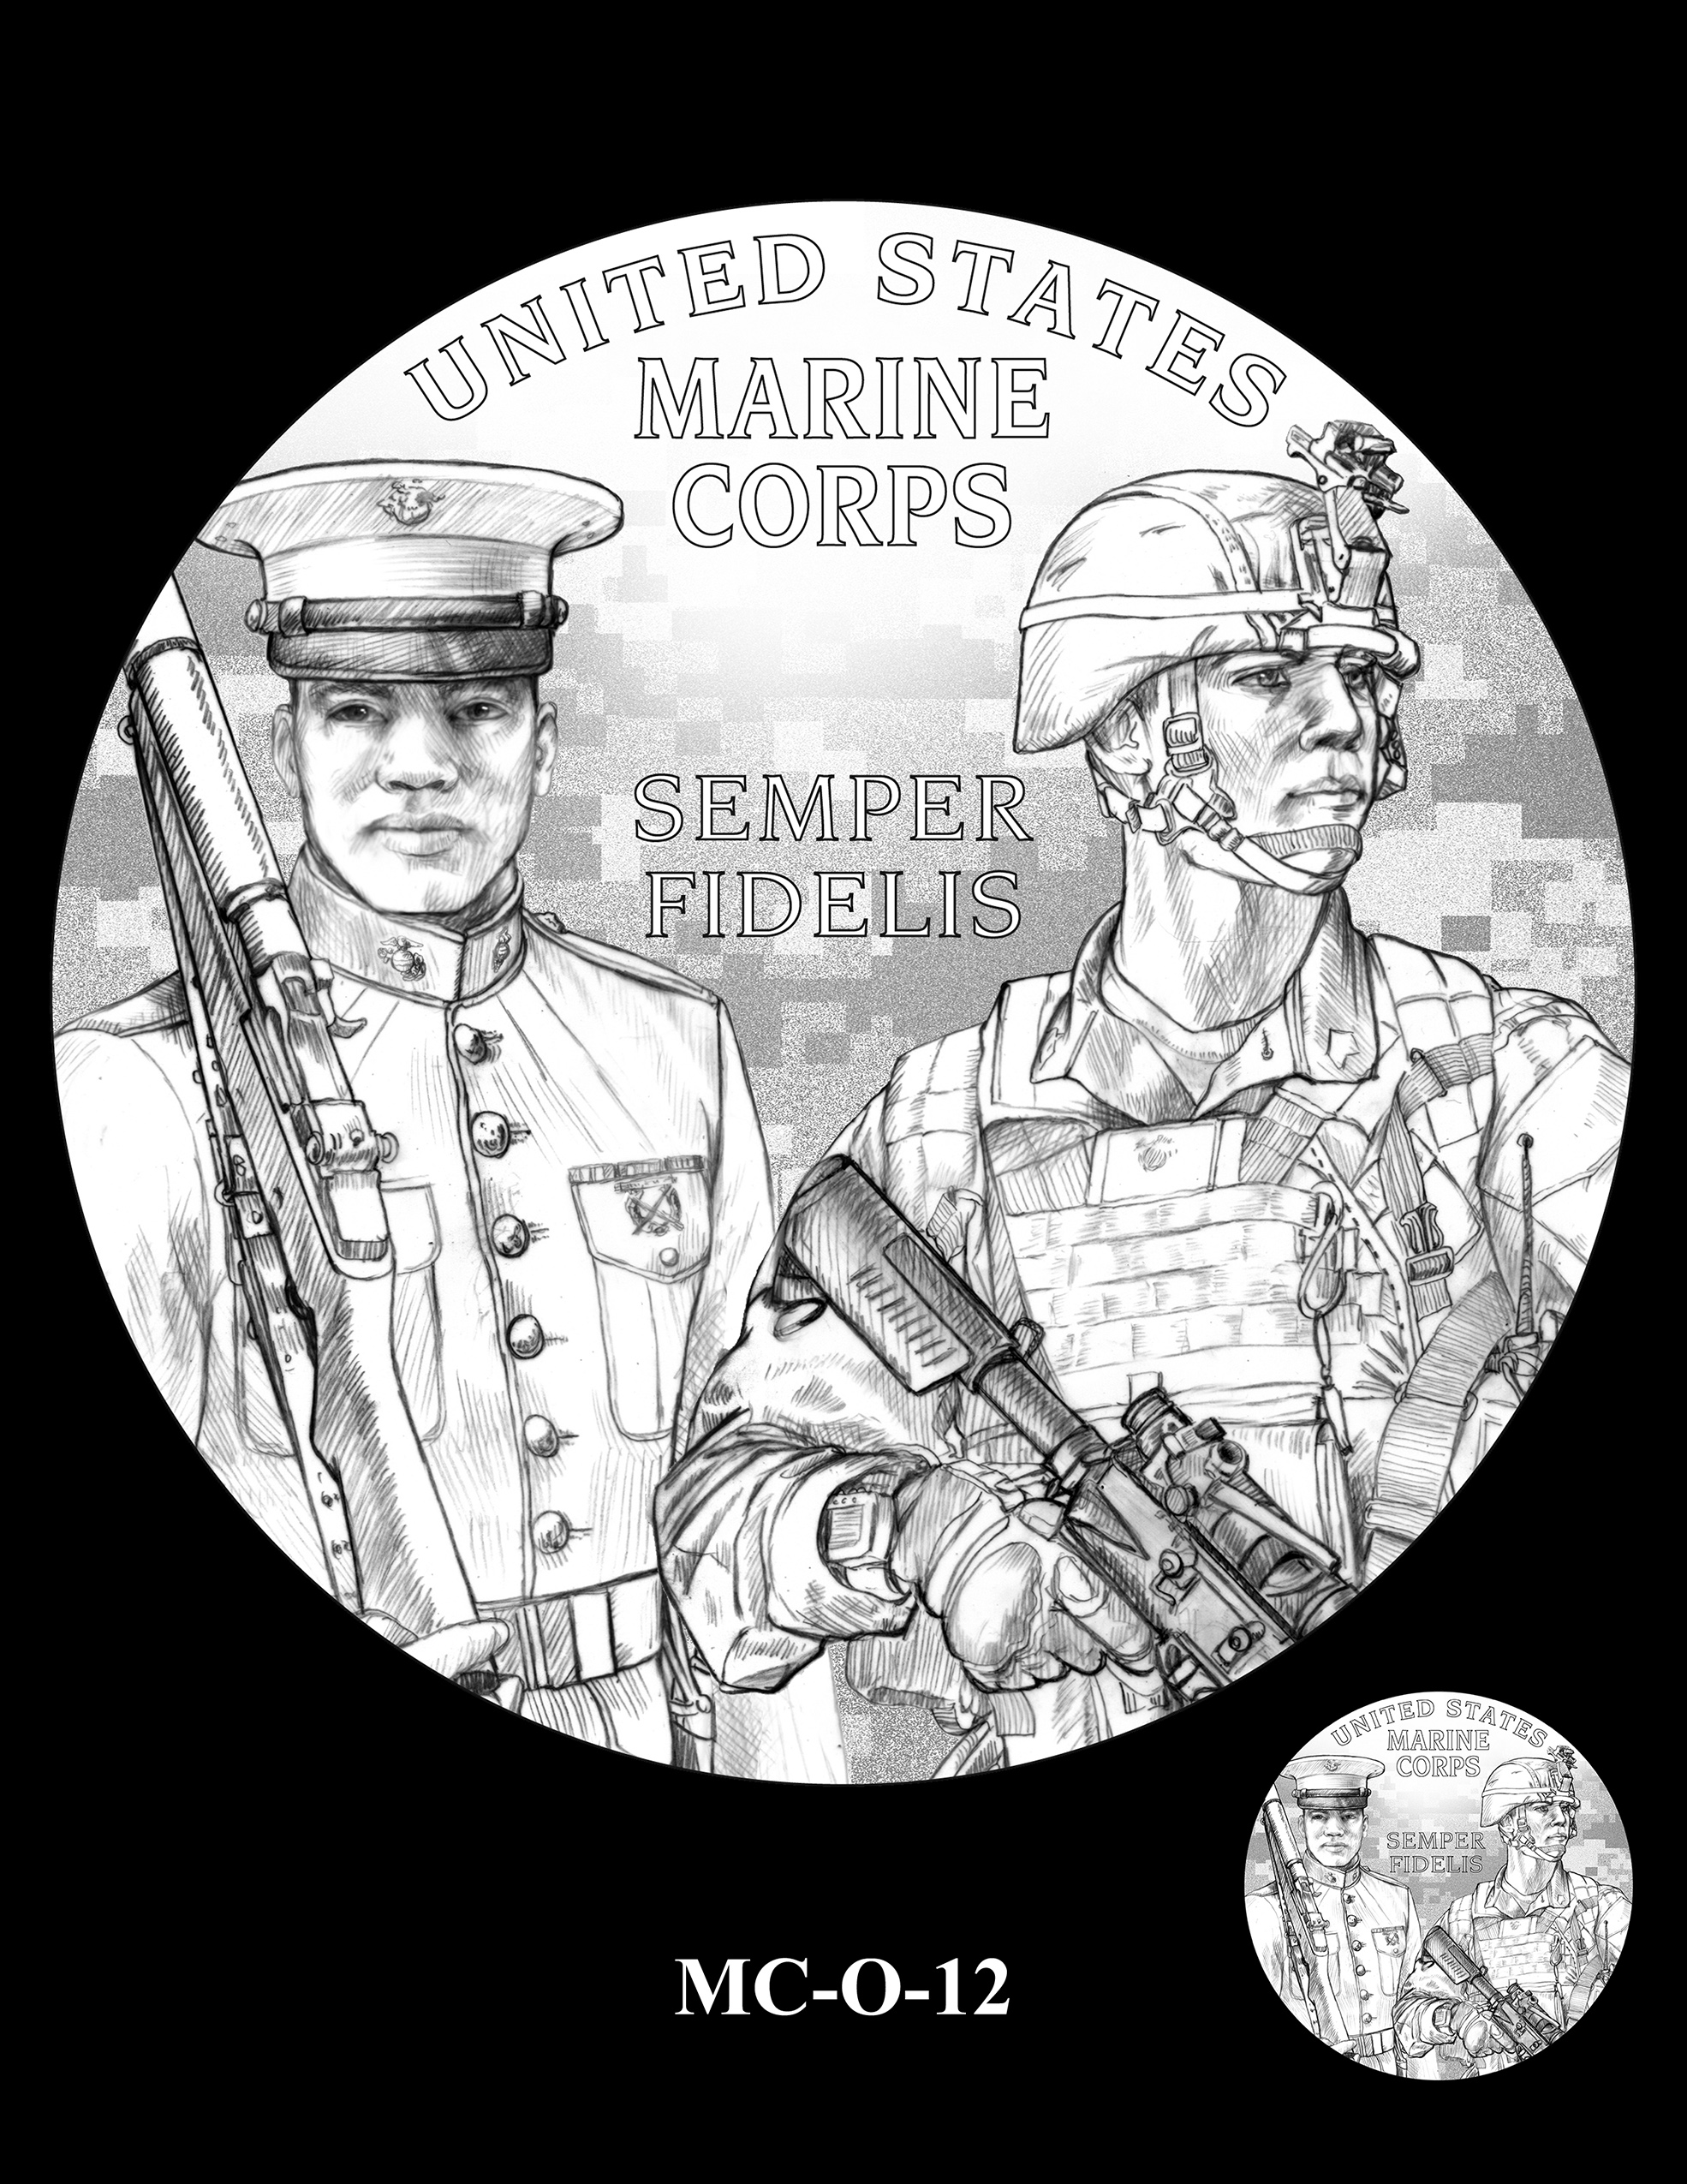 MC-O-12 -- United States Marine Corps Silver Medal